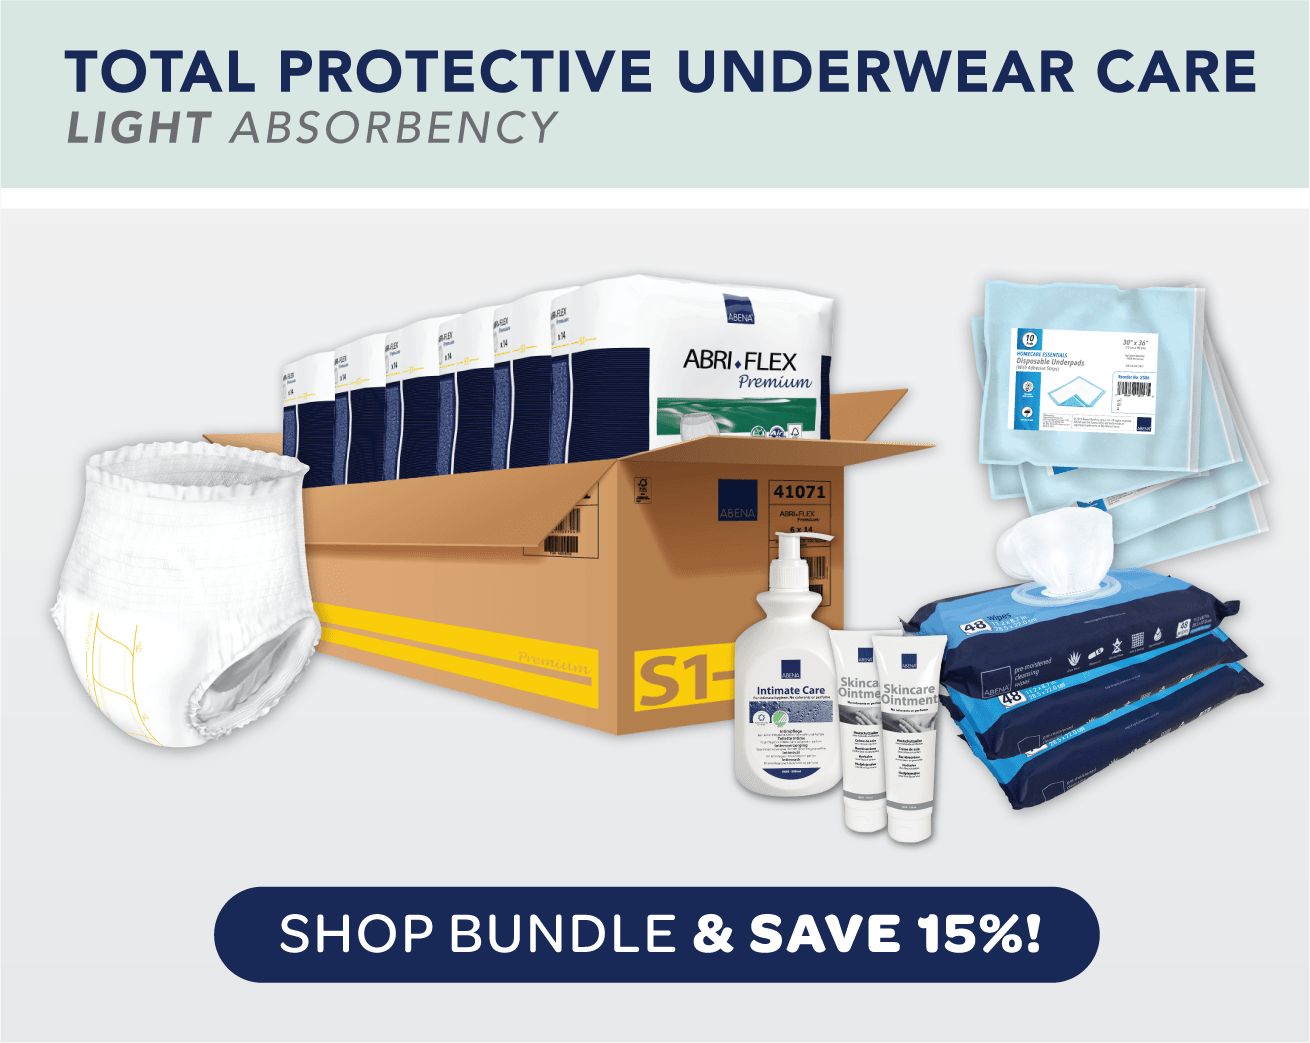 Total Protective Underwear Care